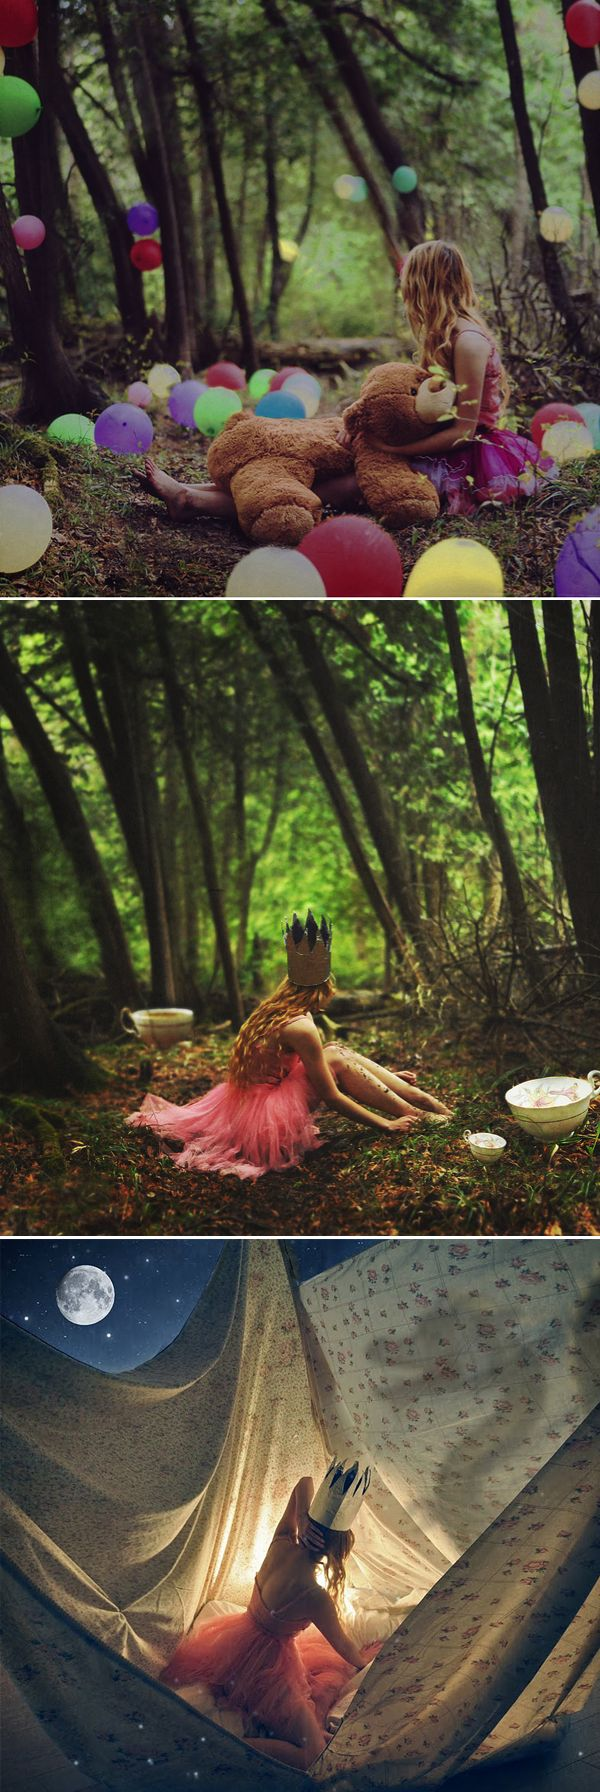 either a teepee or drape cool fabric. whimsical feel in the forest with DIY paper crowns and dresses